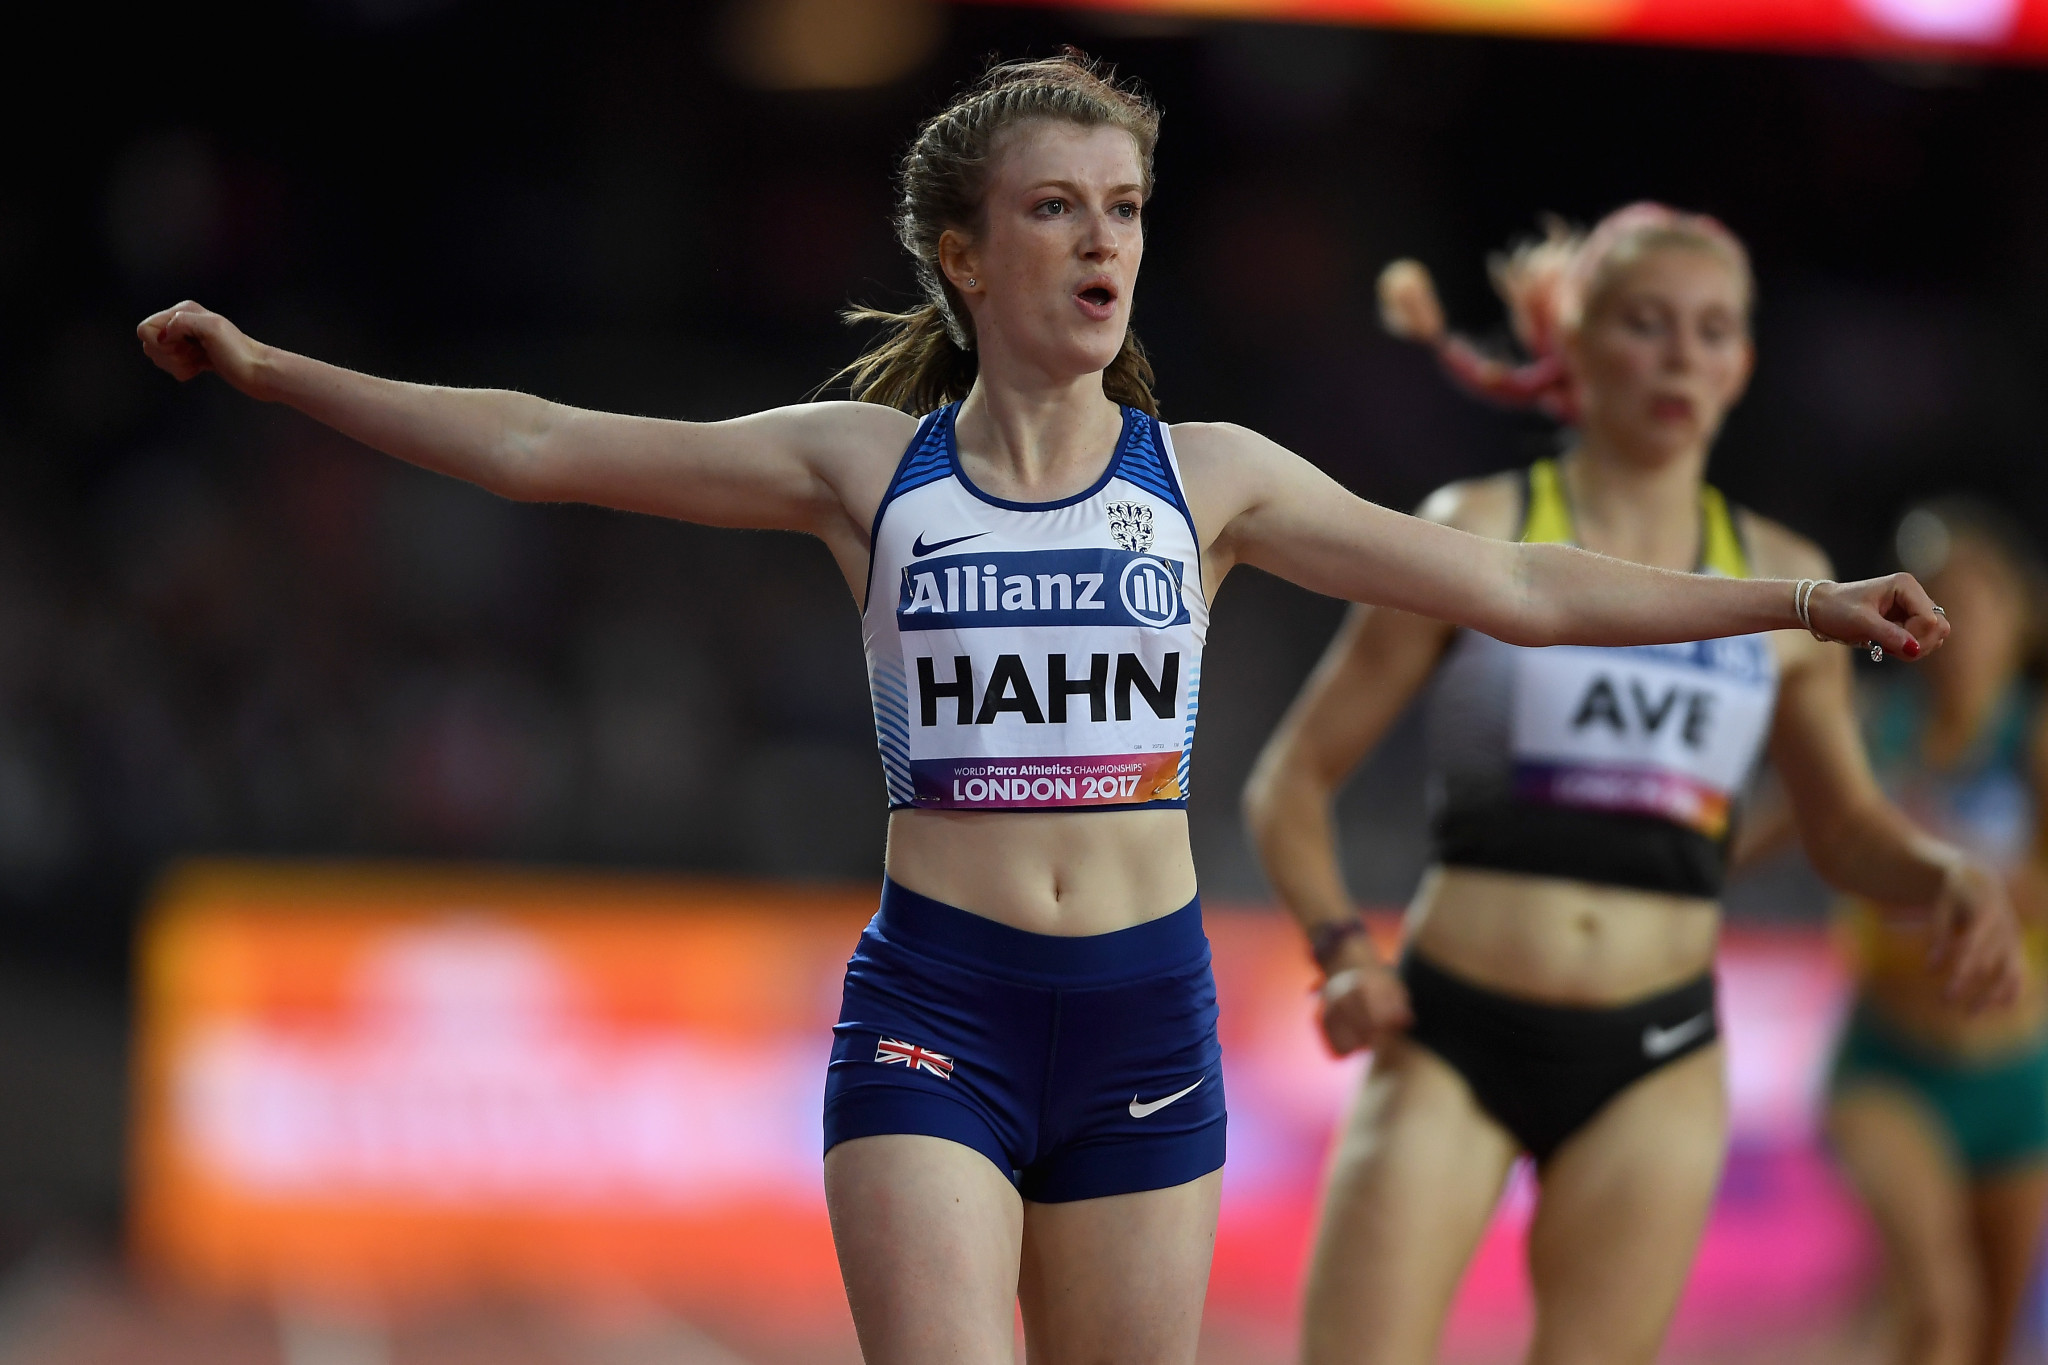 Craig Spence criticised the father of Paralympian Olivia Breen, Michael, who had used parliamentary privilege to name Sophie Hahn as a British athletes he believes is benefiting from being in the wrong class ©Getty Images